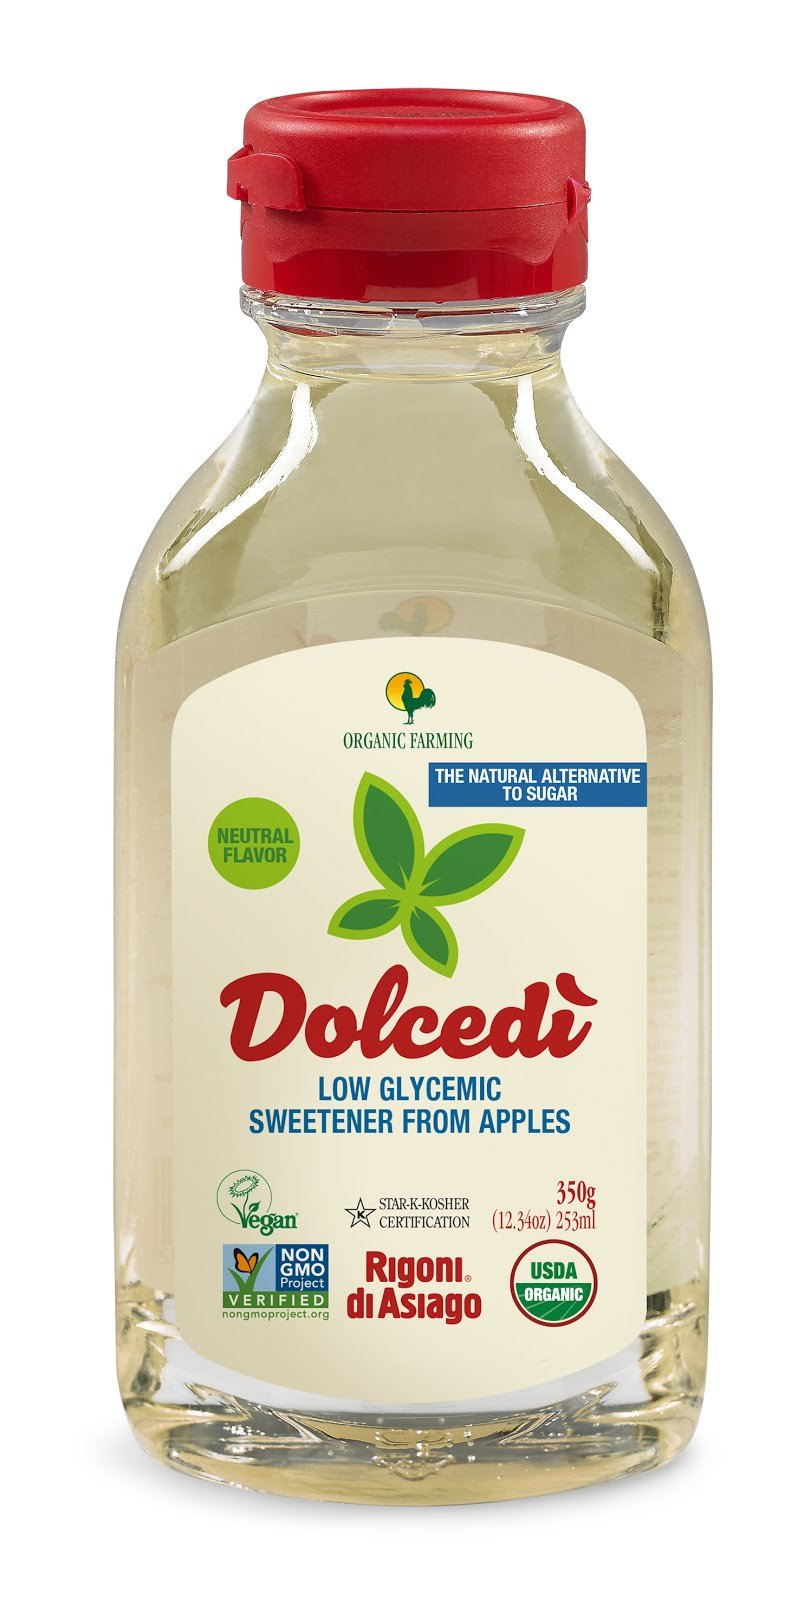 Dolcedi Low Glycemic Sweetener From Apples by Rigoni di Asiago